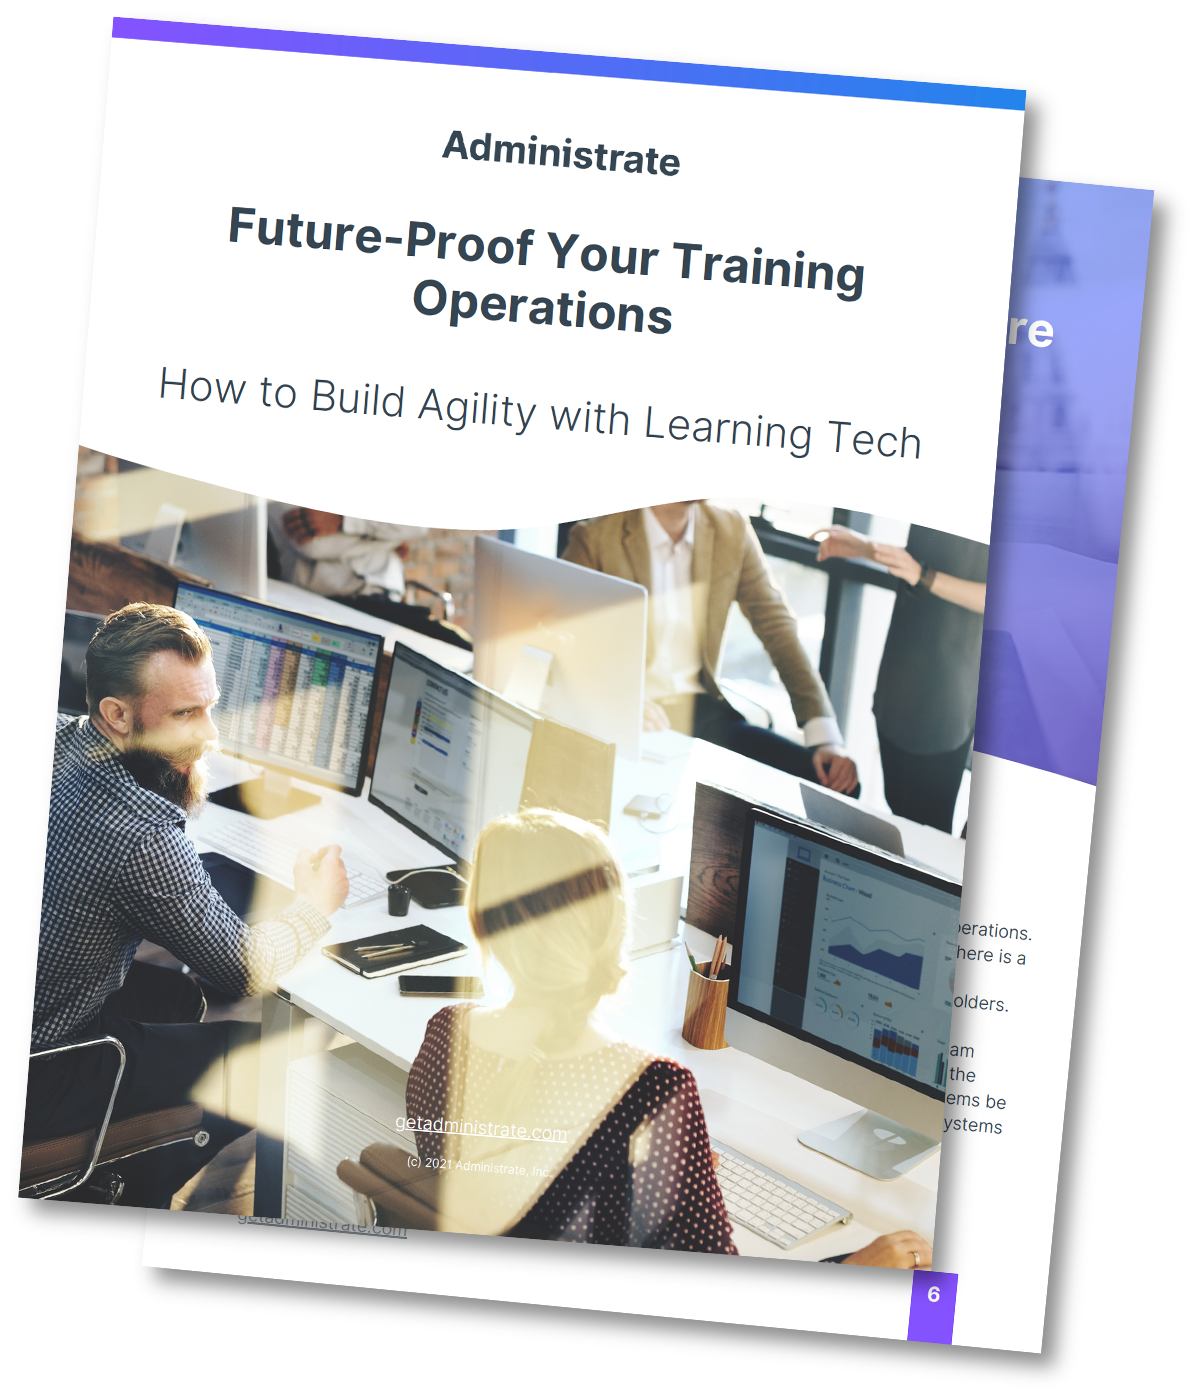 Future-Proof Your Training Operations Mockup (Drop Shadow) v1